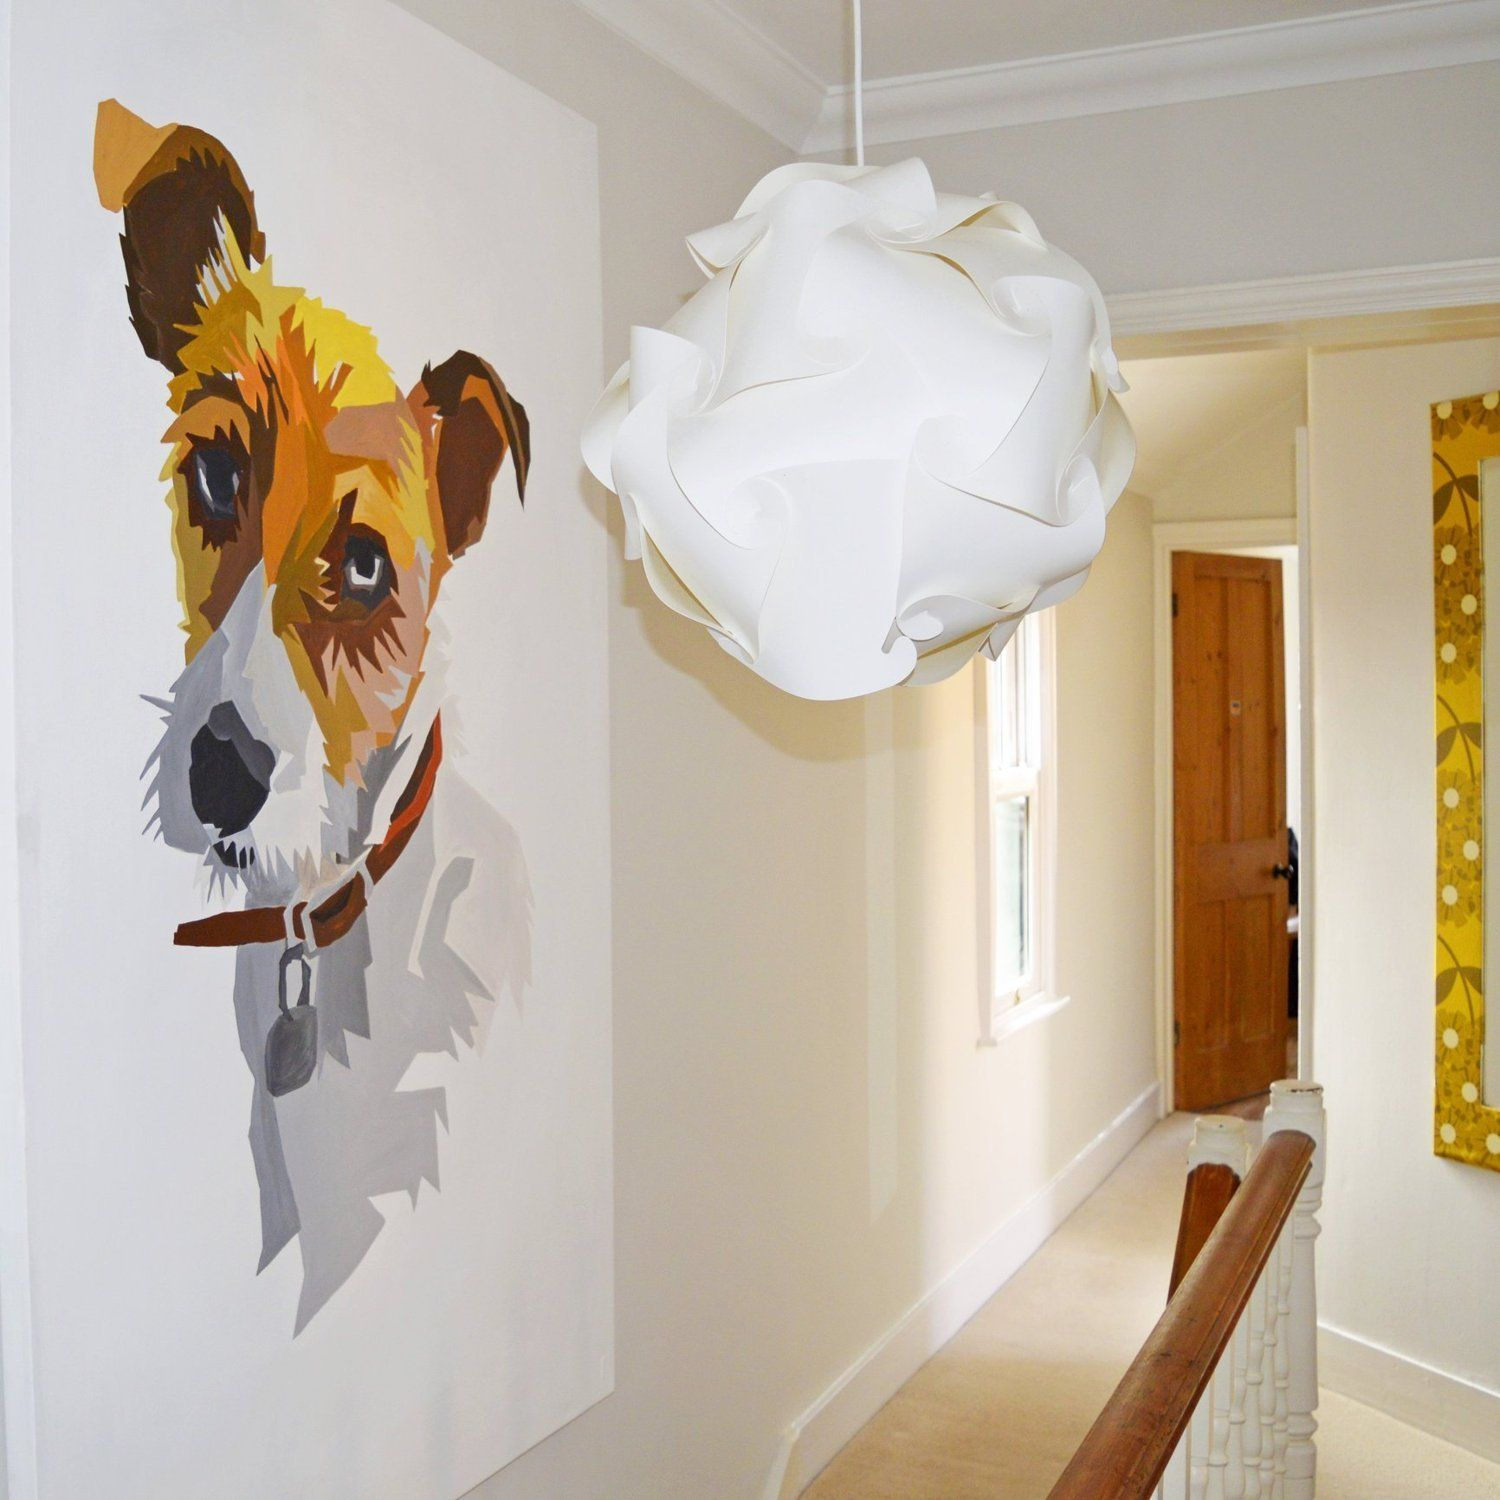 How to paint an apartment - How To Paint The Giant Wall Portrait Your Pet Deserves Apartment Therapy Reader Submission Tutorials